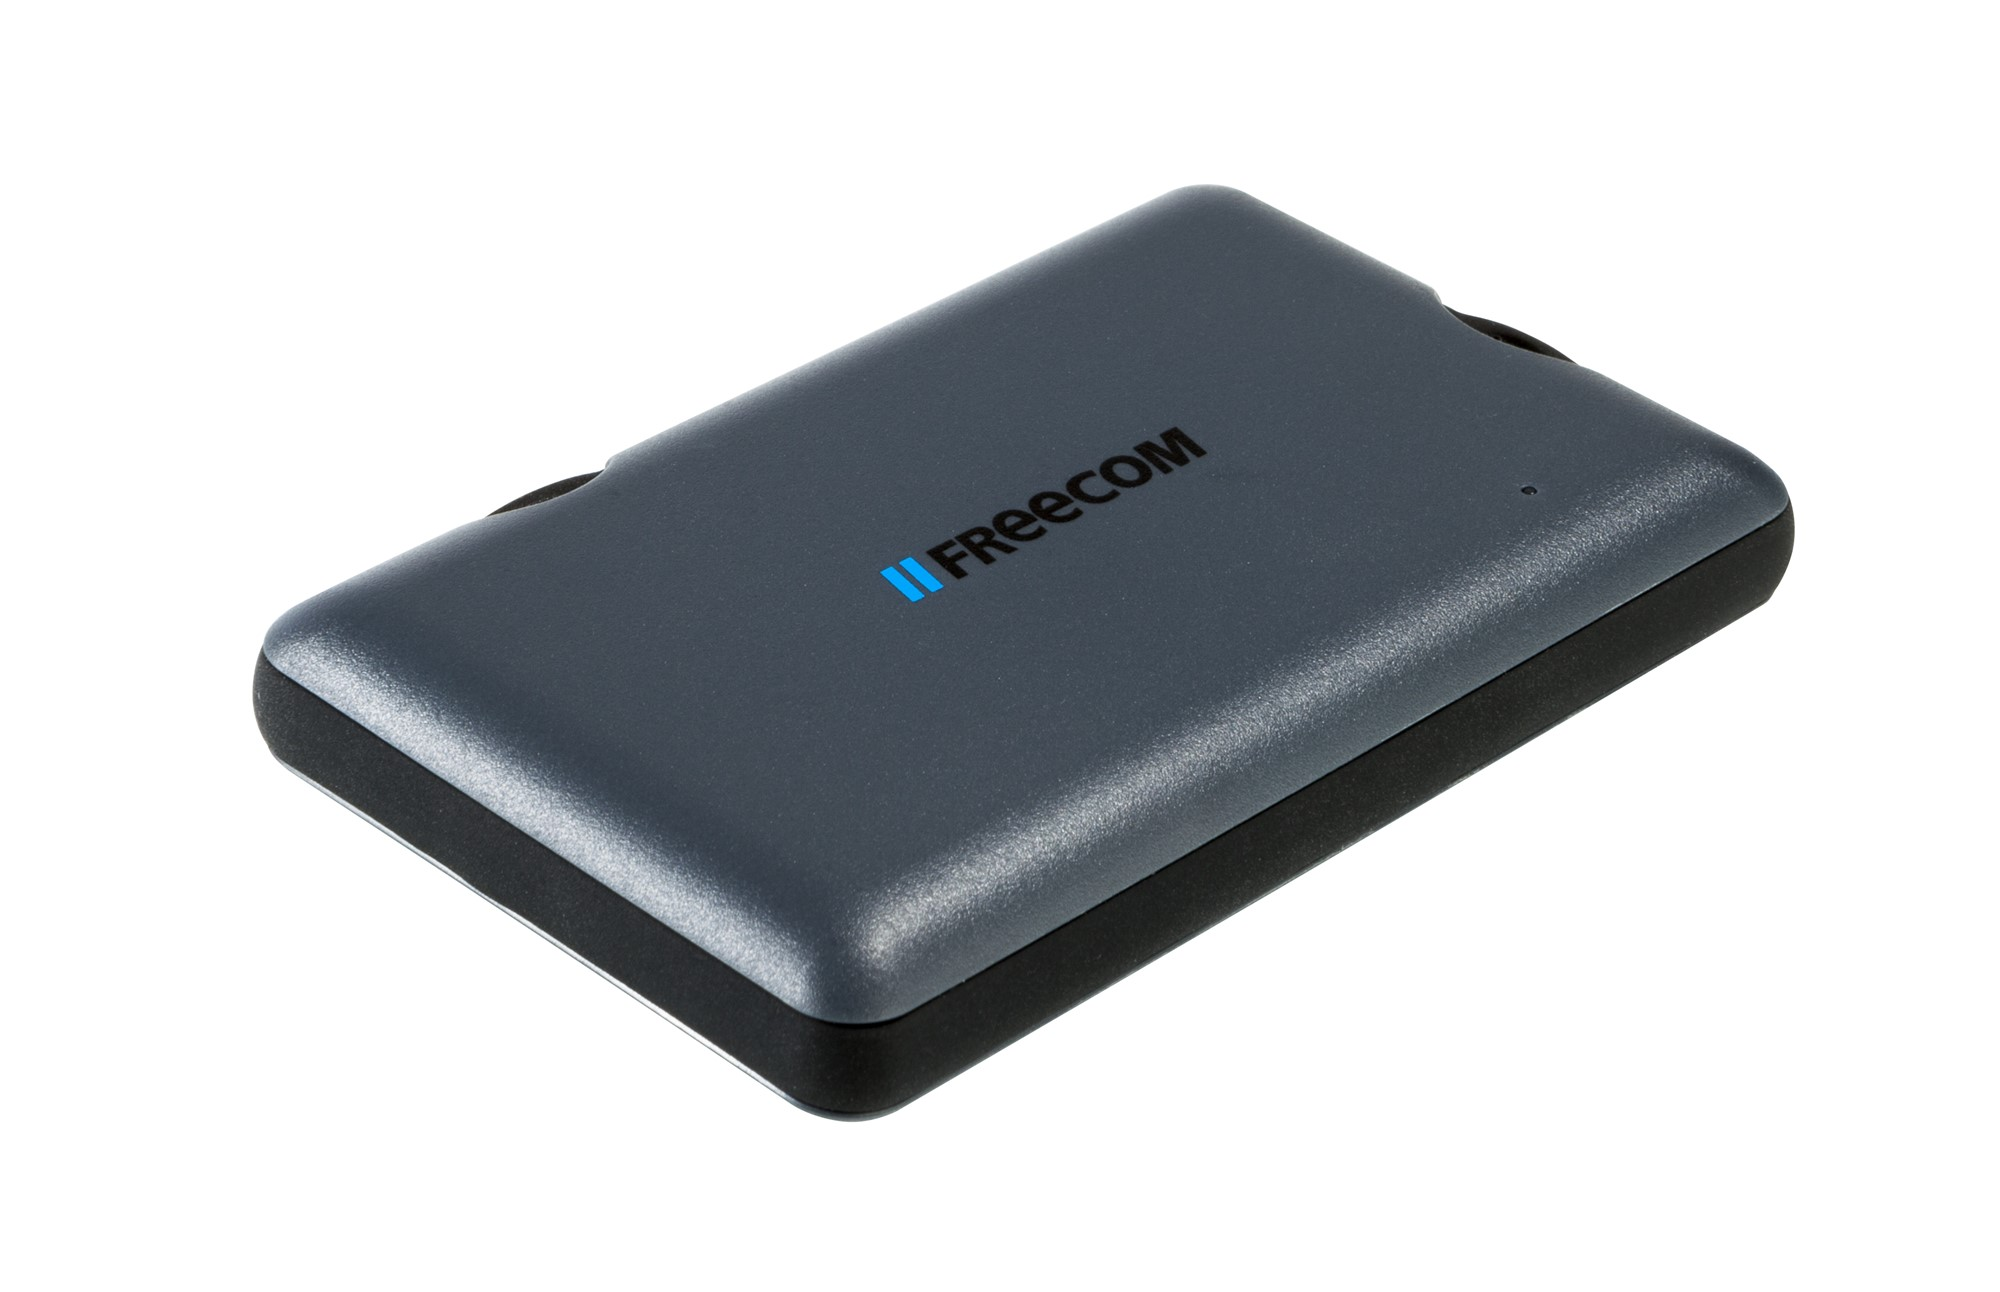 FREECOM 56346 TABLET MINI SSD 128GB ANTHRACITE,BLACK